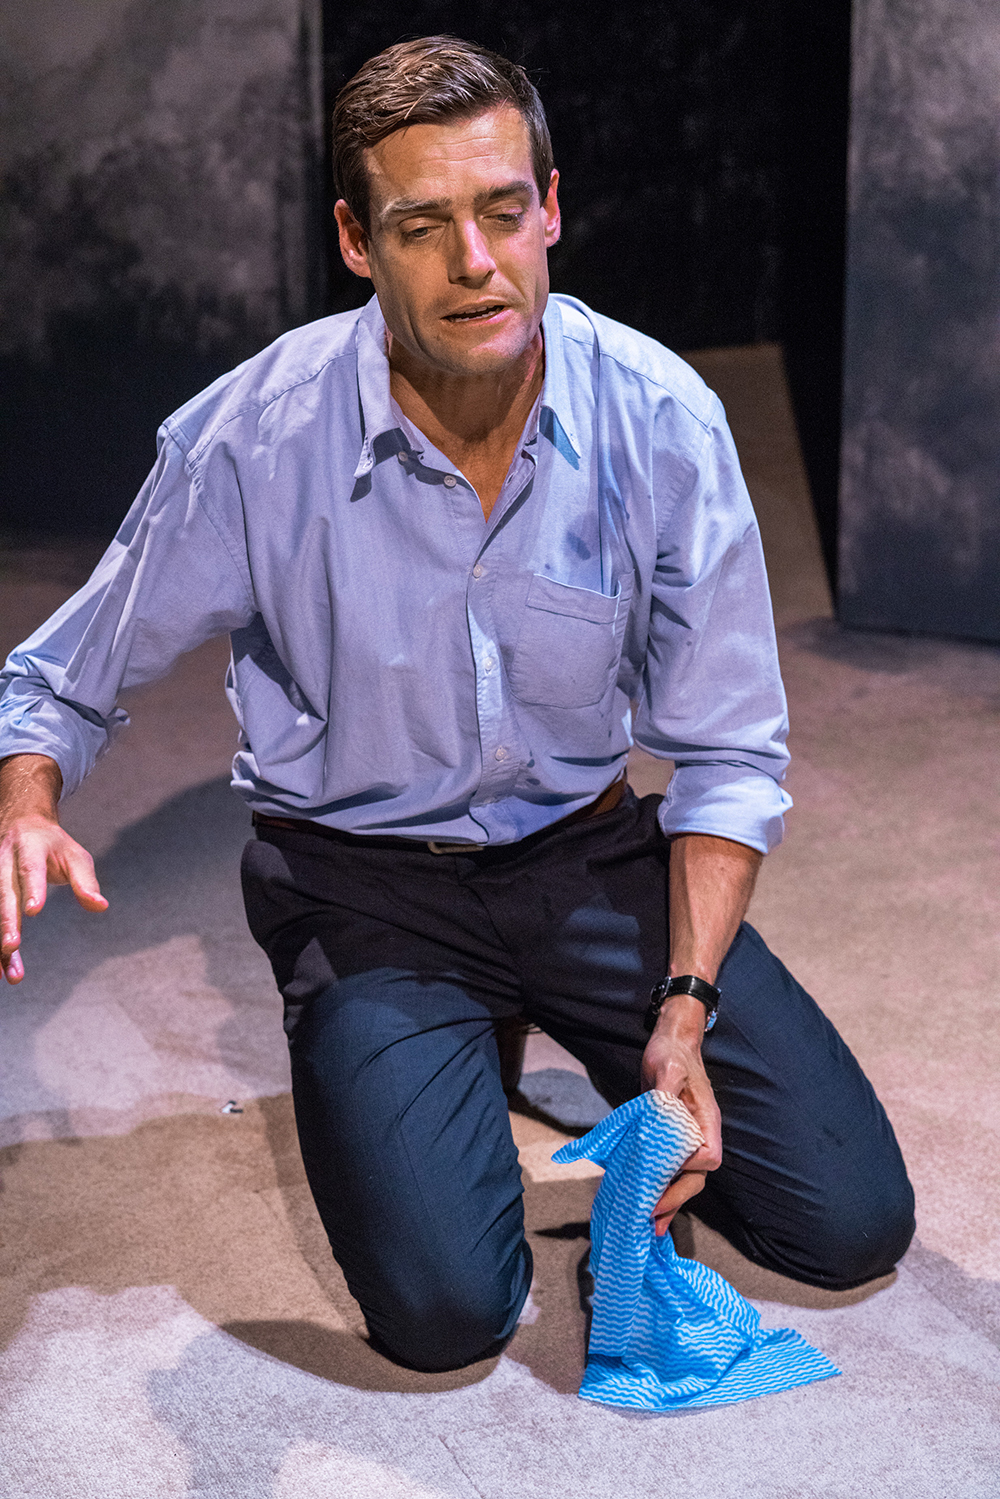 King Of Pigs _ Production Image _ Ashley Hawkes _ Photography by John Marmaras.jpg